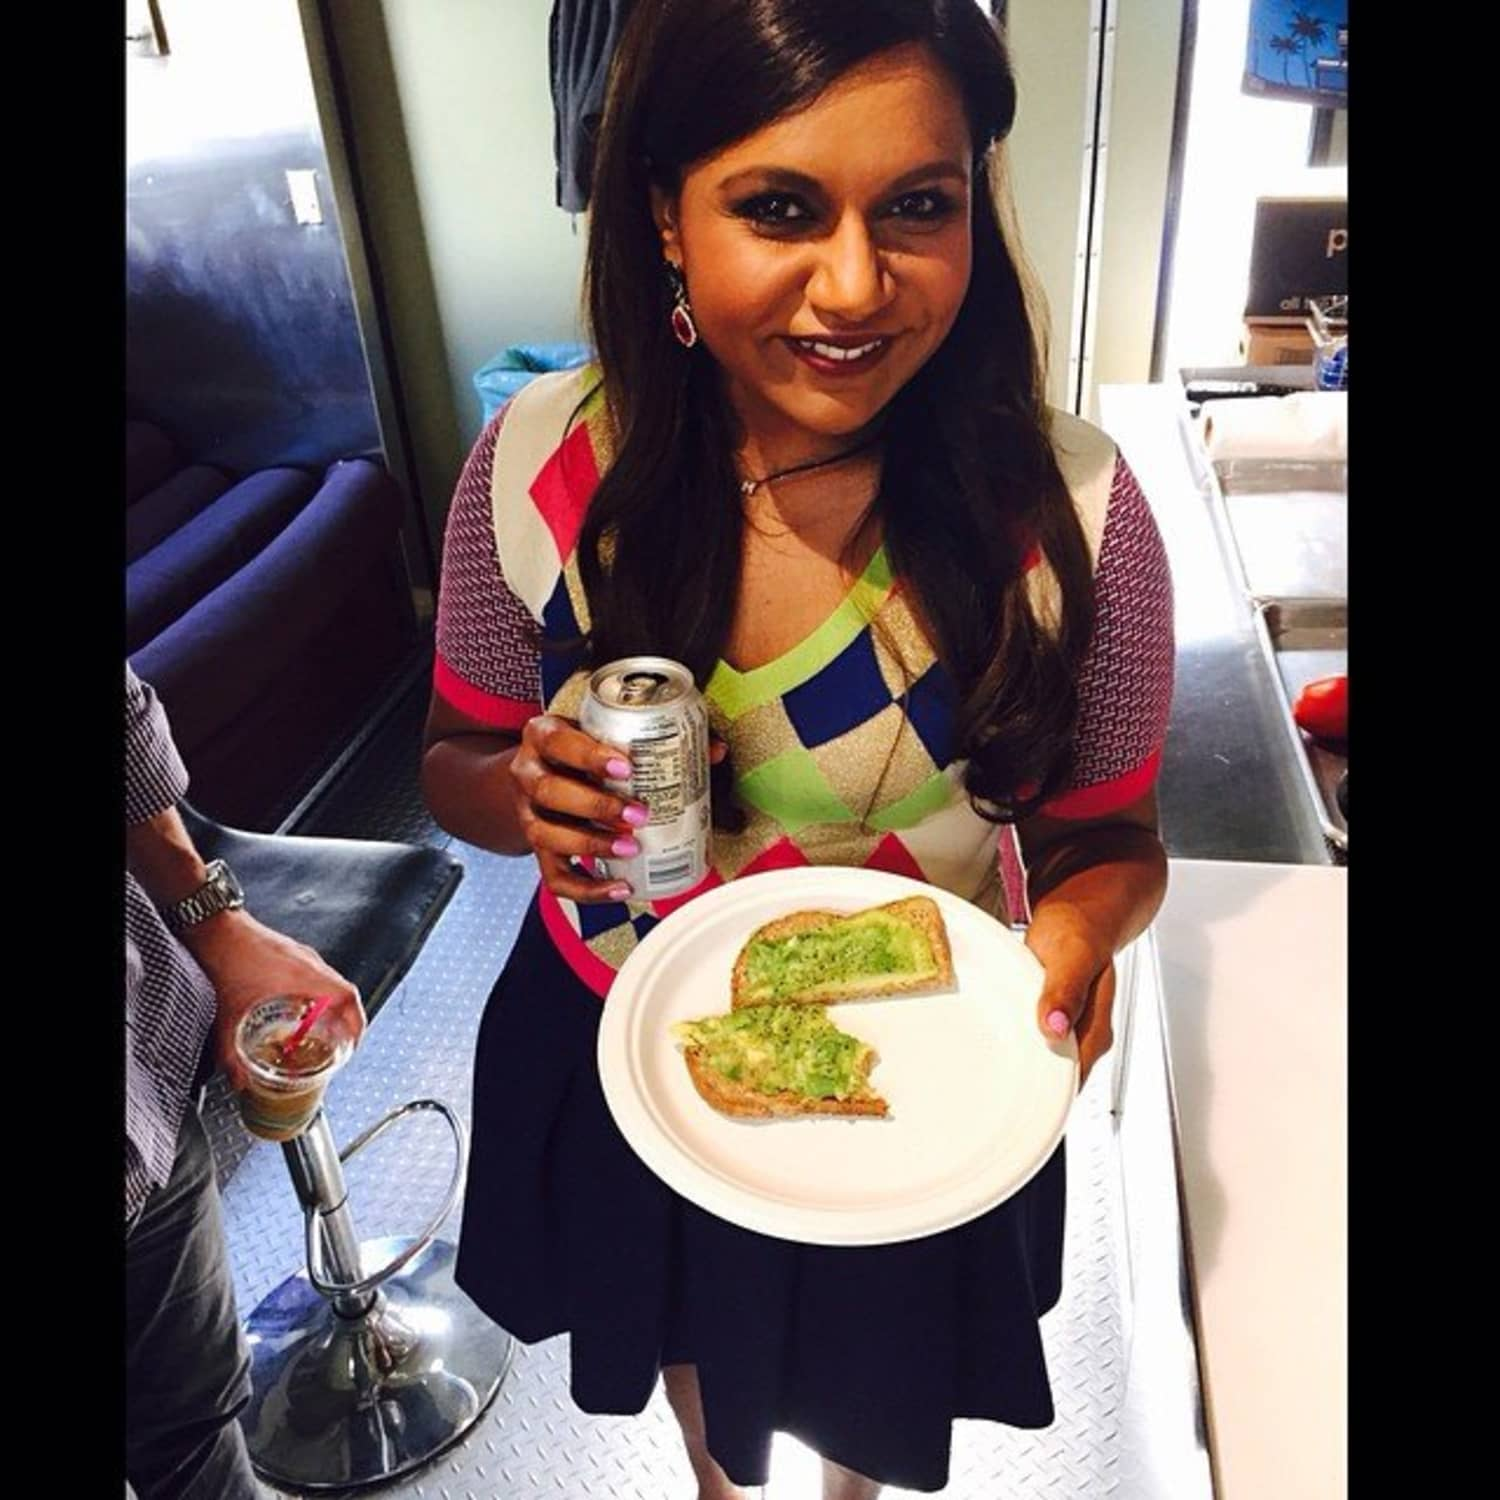 21 Important Things We Ve Learned About Food From Mindy Kaling S Instagram Kitchn